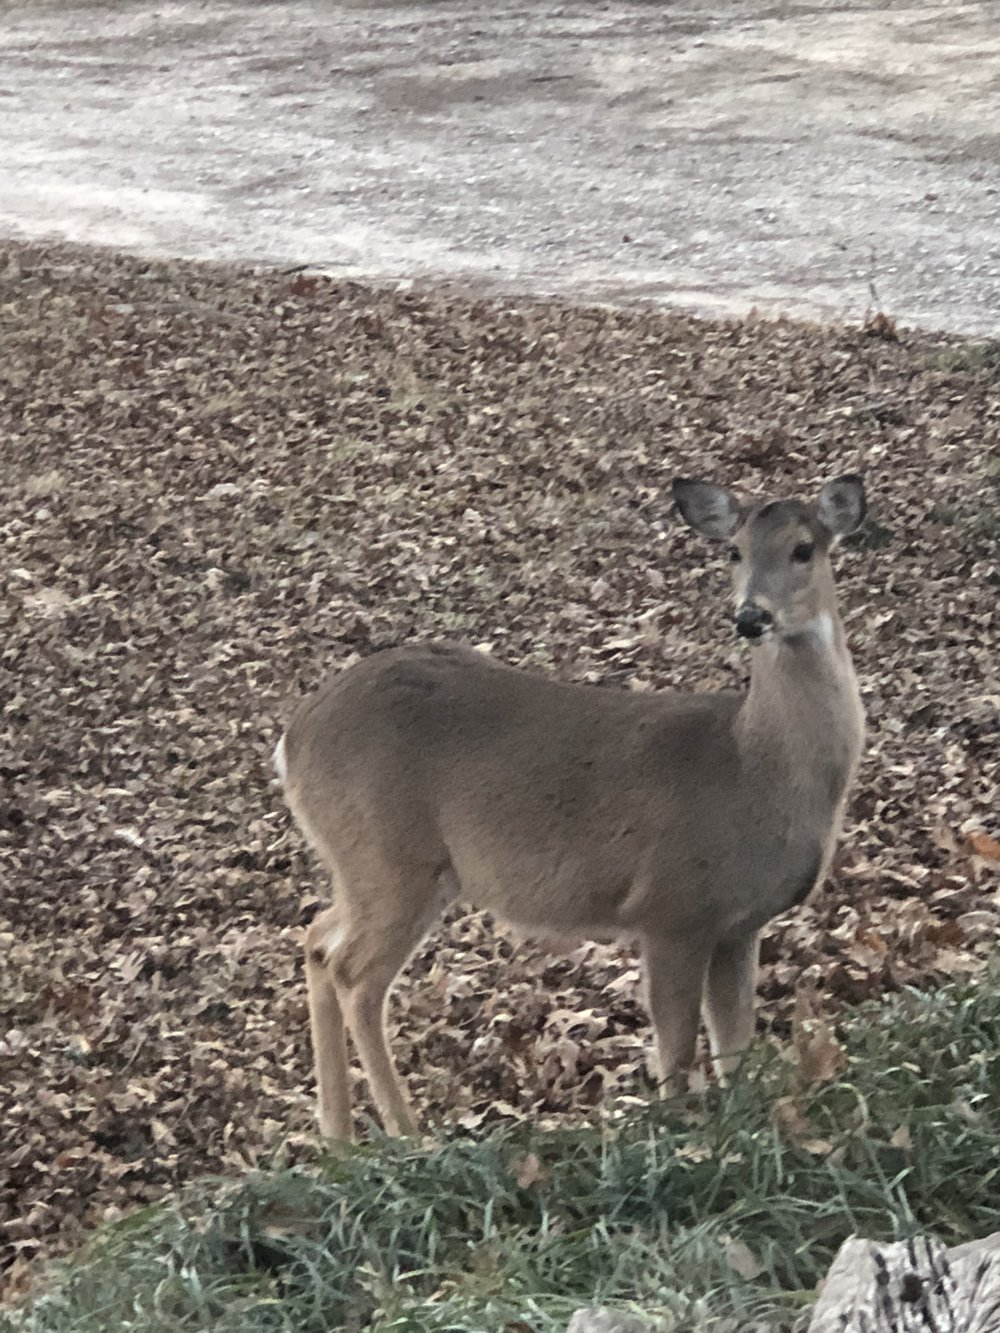 Sunday Deer - Its cold outside but the deer still find their way past my yard!